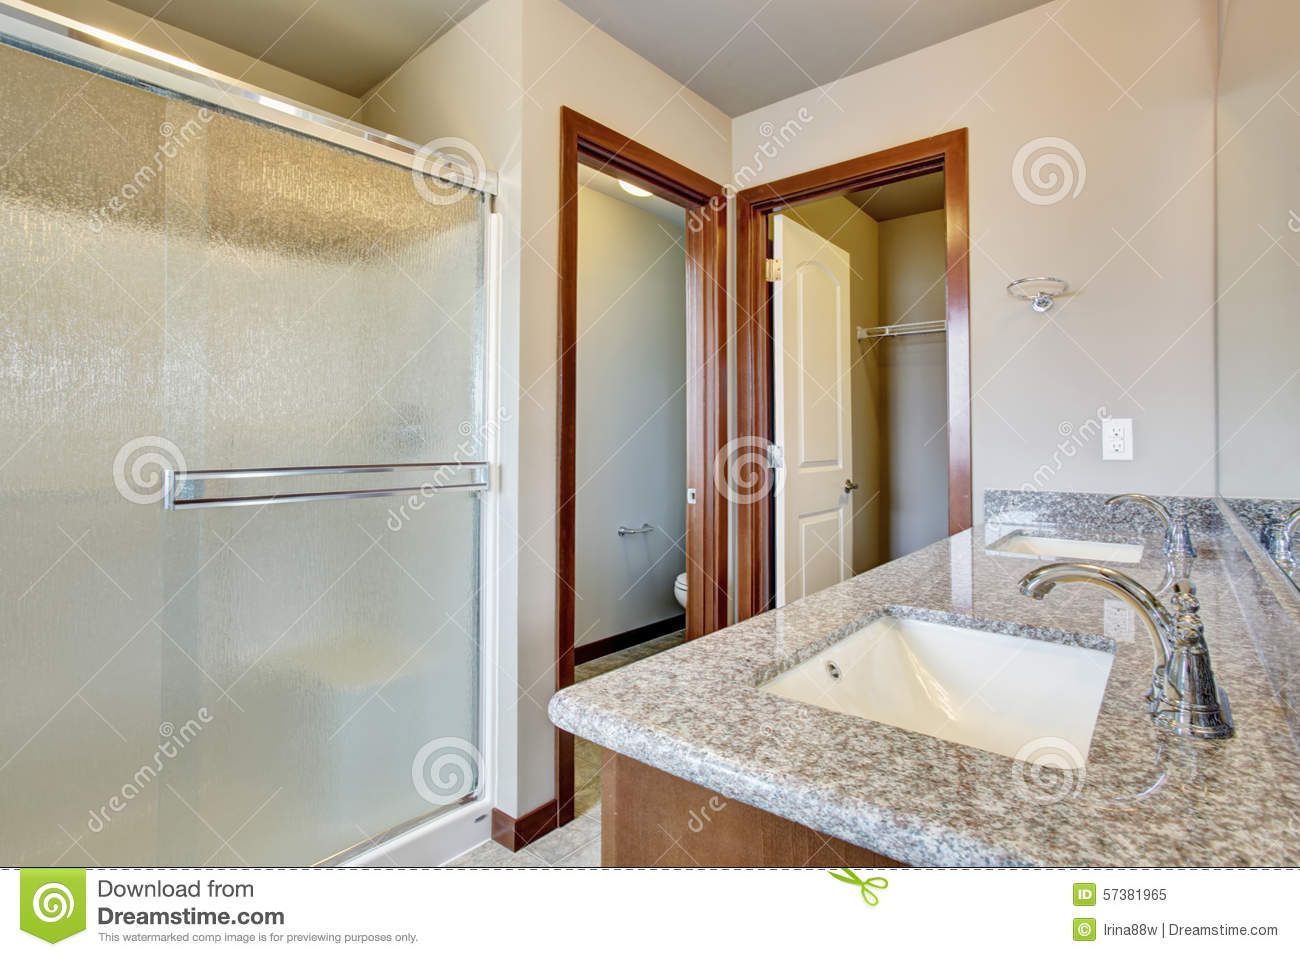 Modern bathroom with separate toilet room stock photo for Bathroom design 9x9